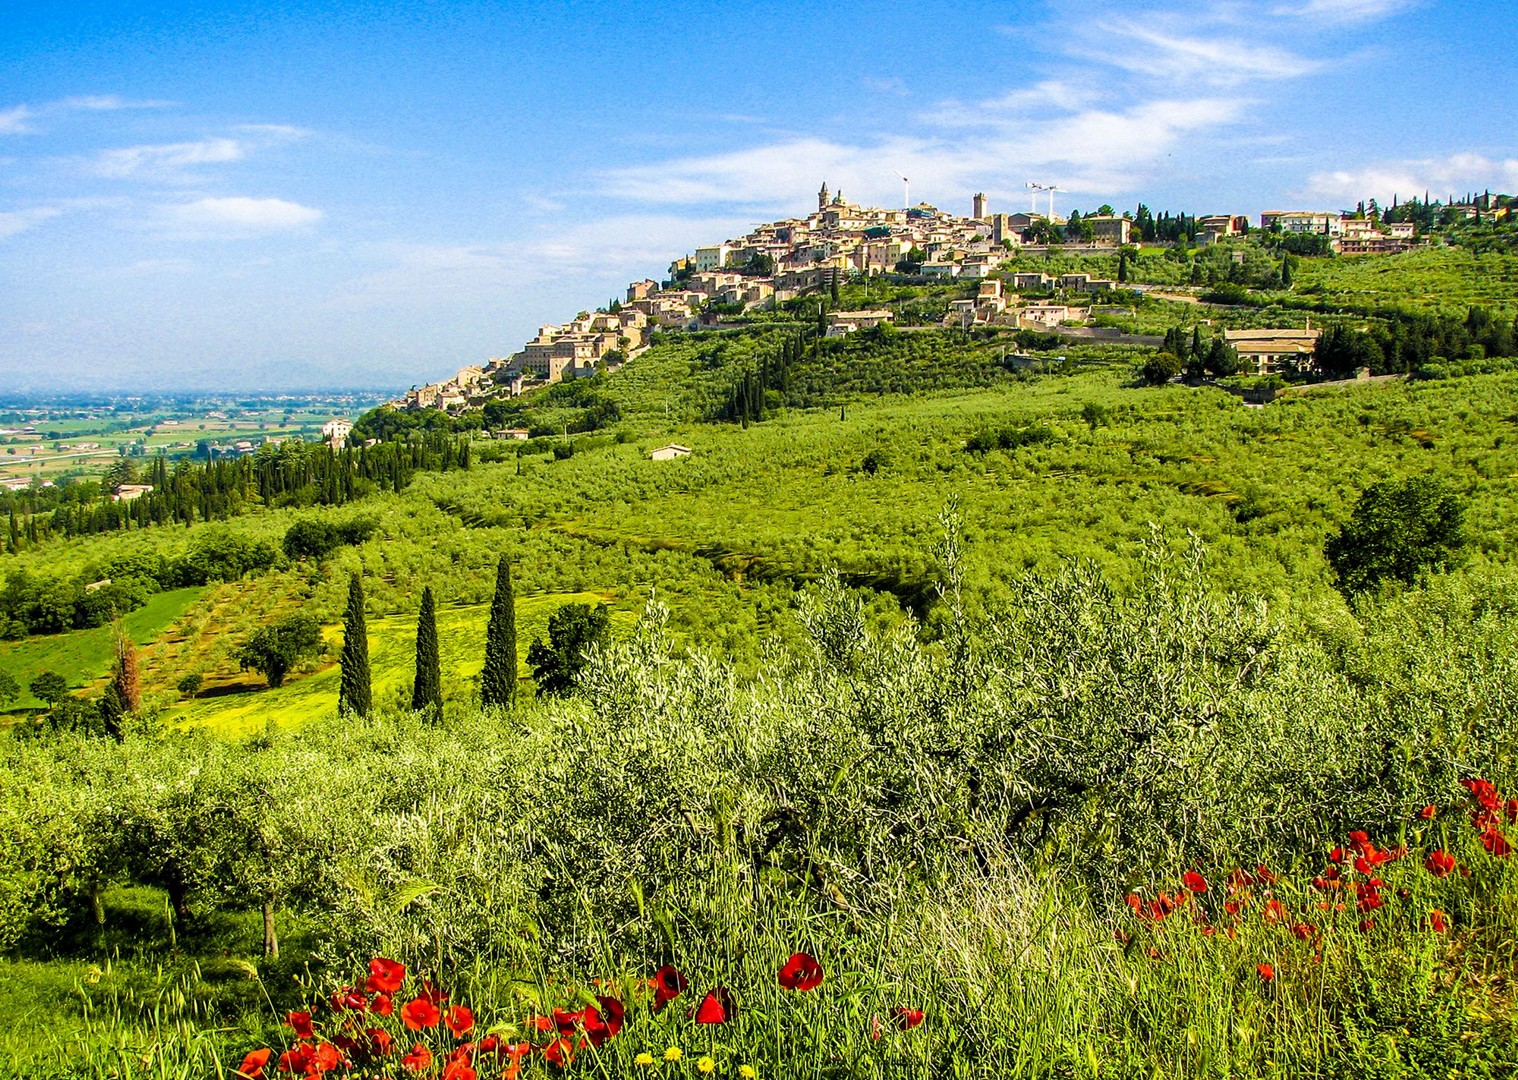 zicht op Trevi.jpg - Italy - Green Valley of Umbria - Self-Guided Leisure Cycling Holiday - Italia Leisure and Family Cycling